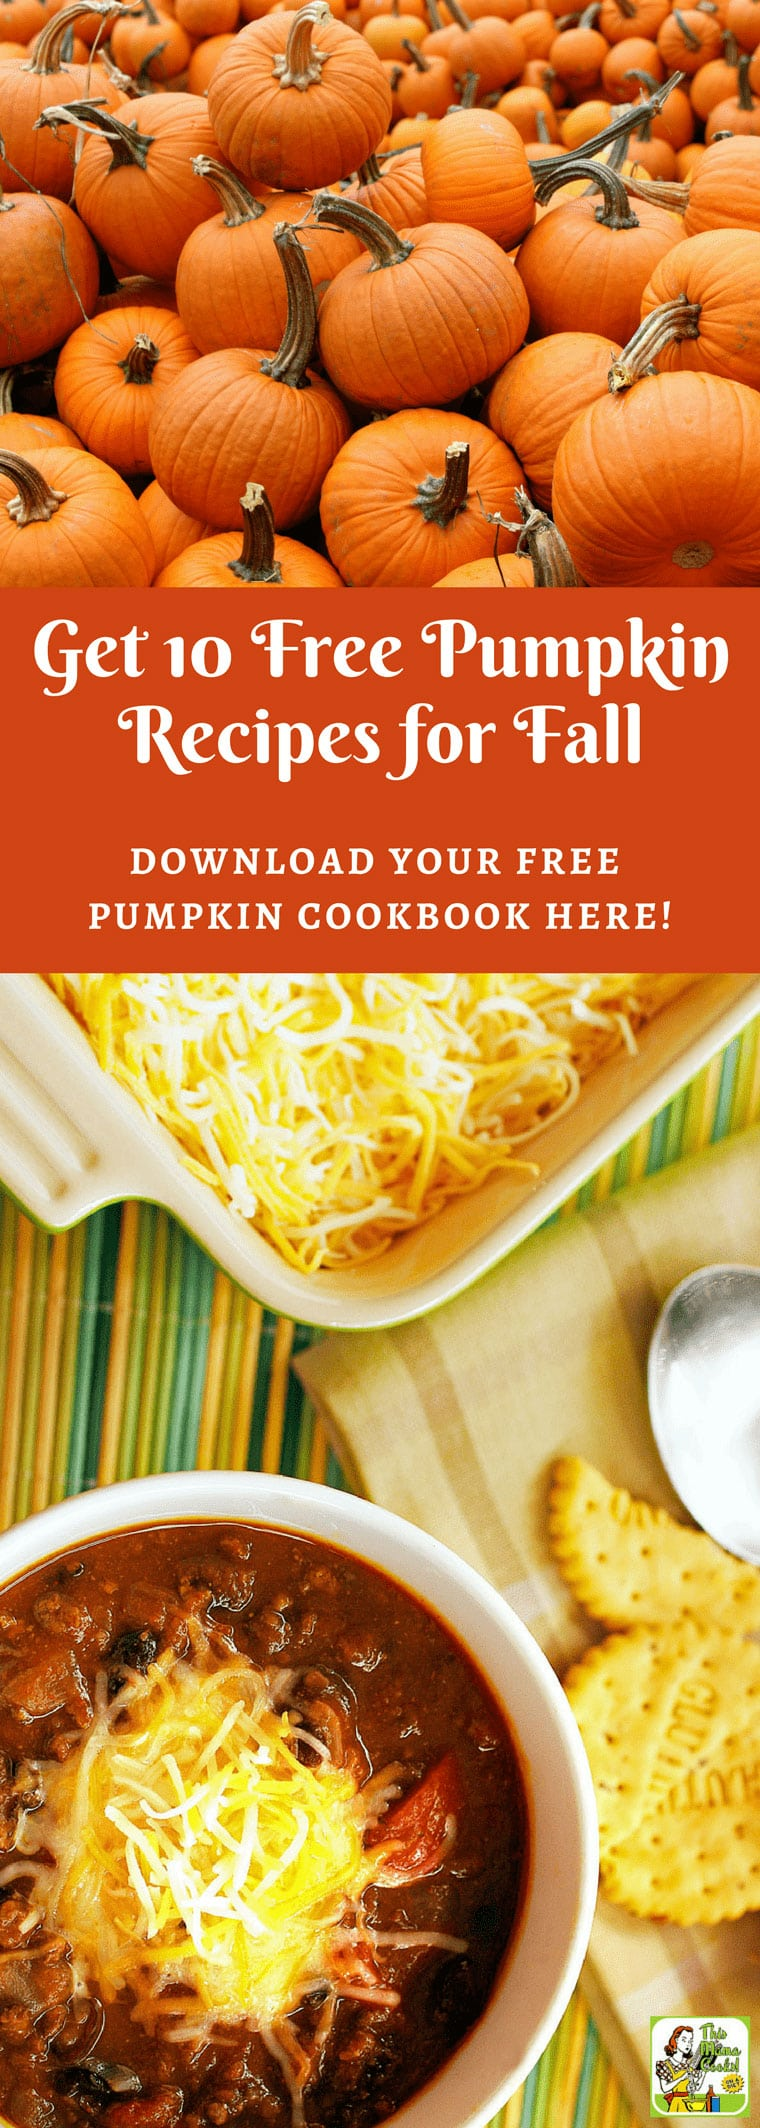 Click here to get your free cookbook 10 Pumpkin Recipes for fall. In it, you'll get 10 easy to make, healthy pumpkin recipes. You'll find delicious pumpkin recipes for breakfast, snack, lunch, dinner, and dessert. Includes tips for making recipes gluten free and dairy free. You'll find reduced sugar, or sugar free pumpkin recipes, too!